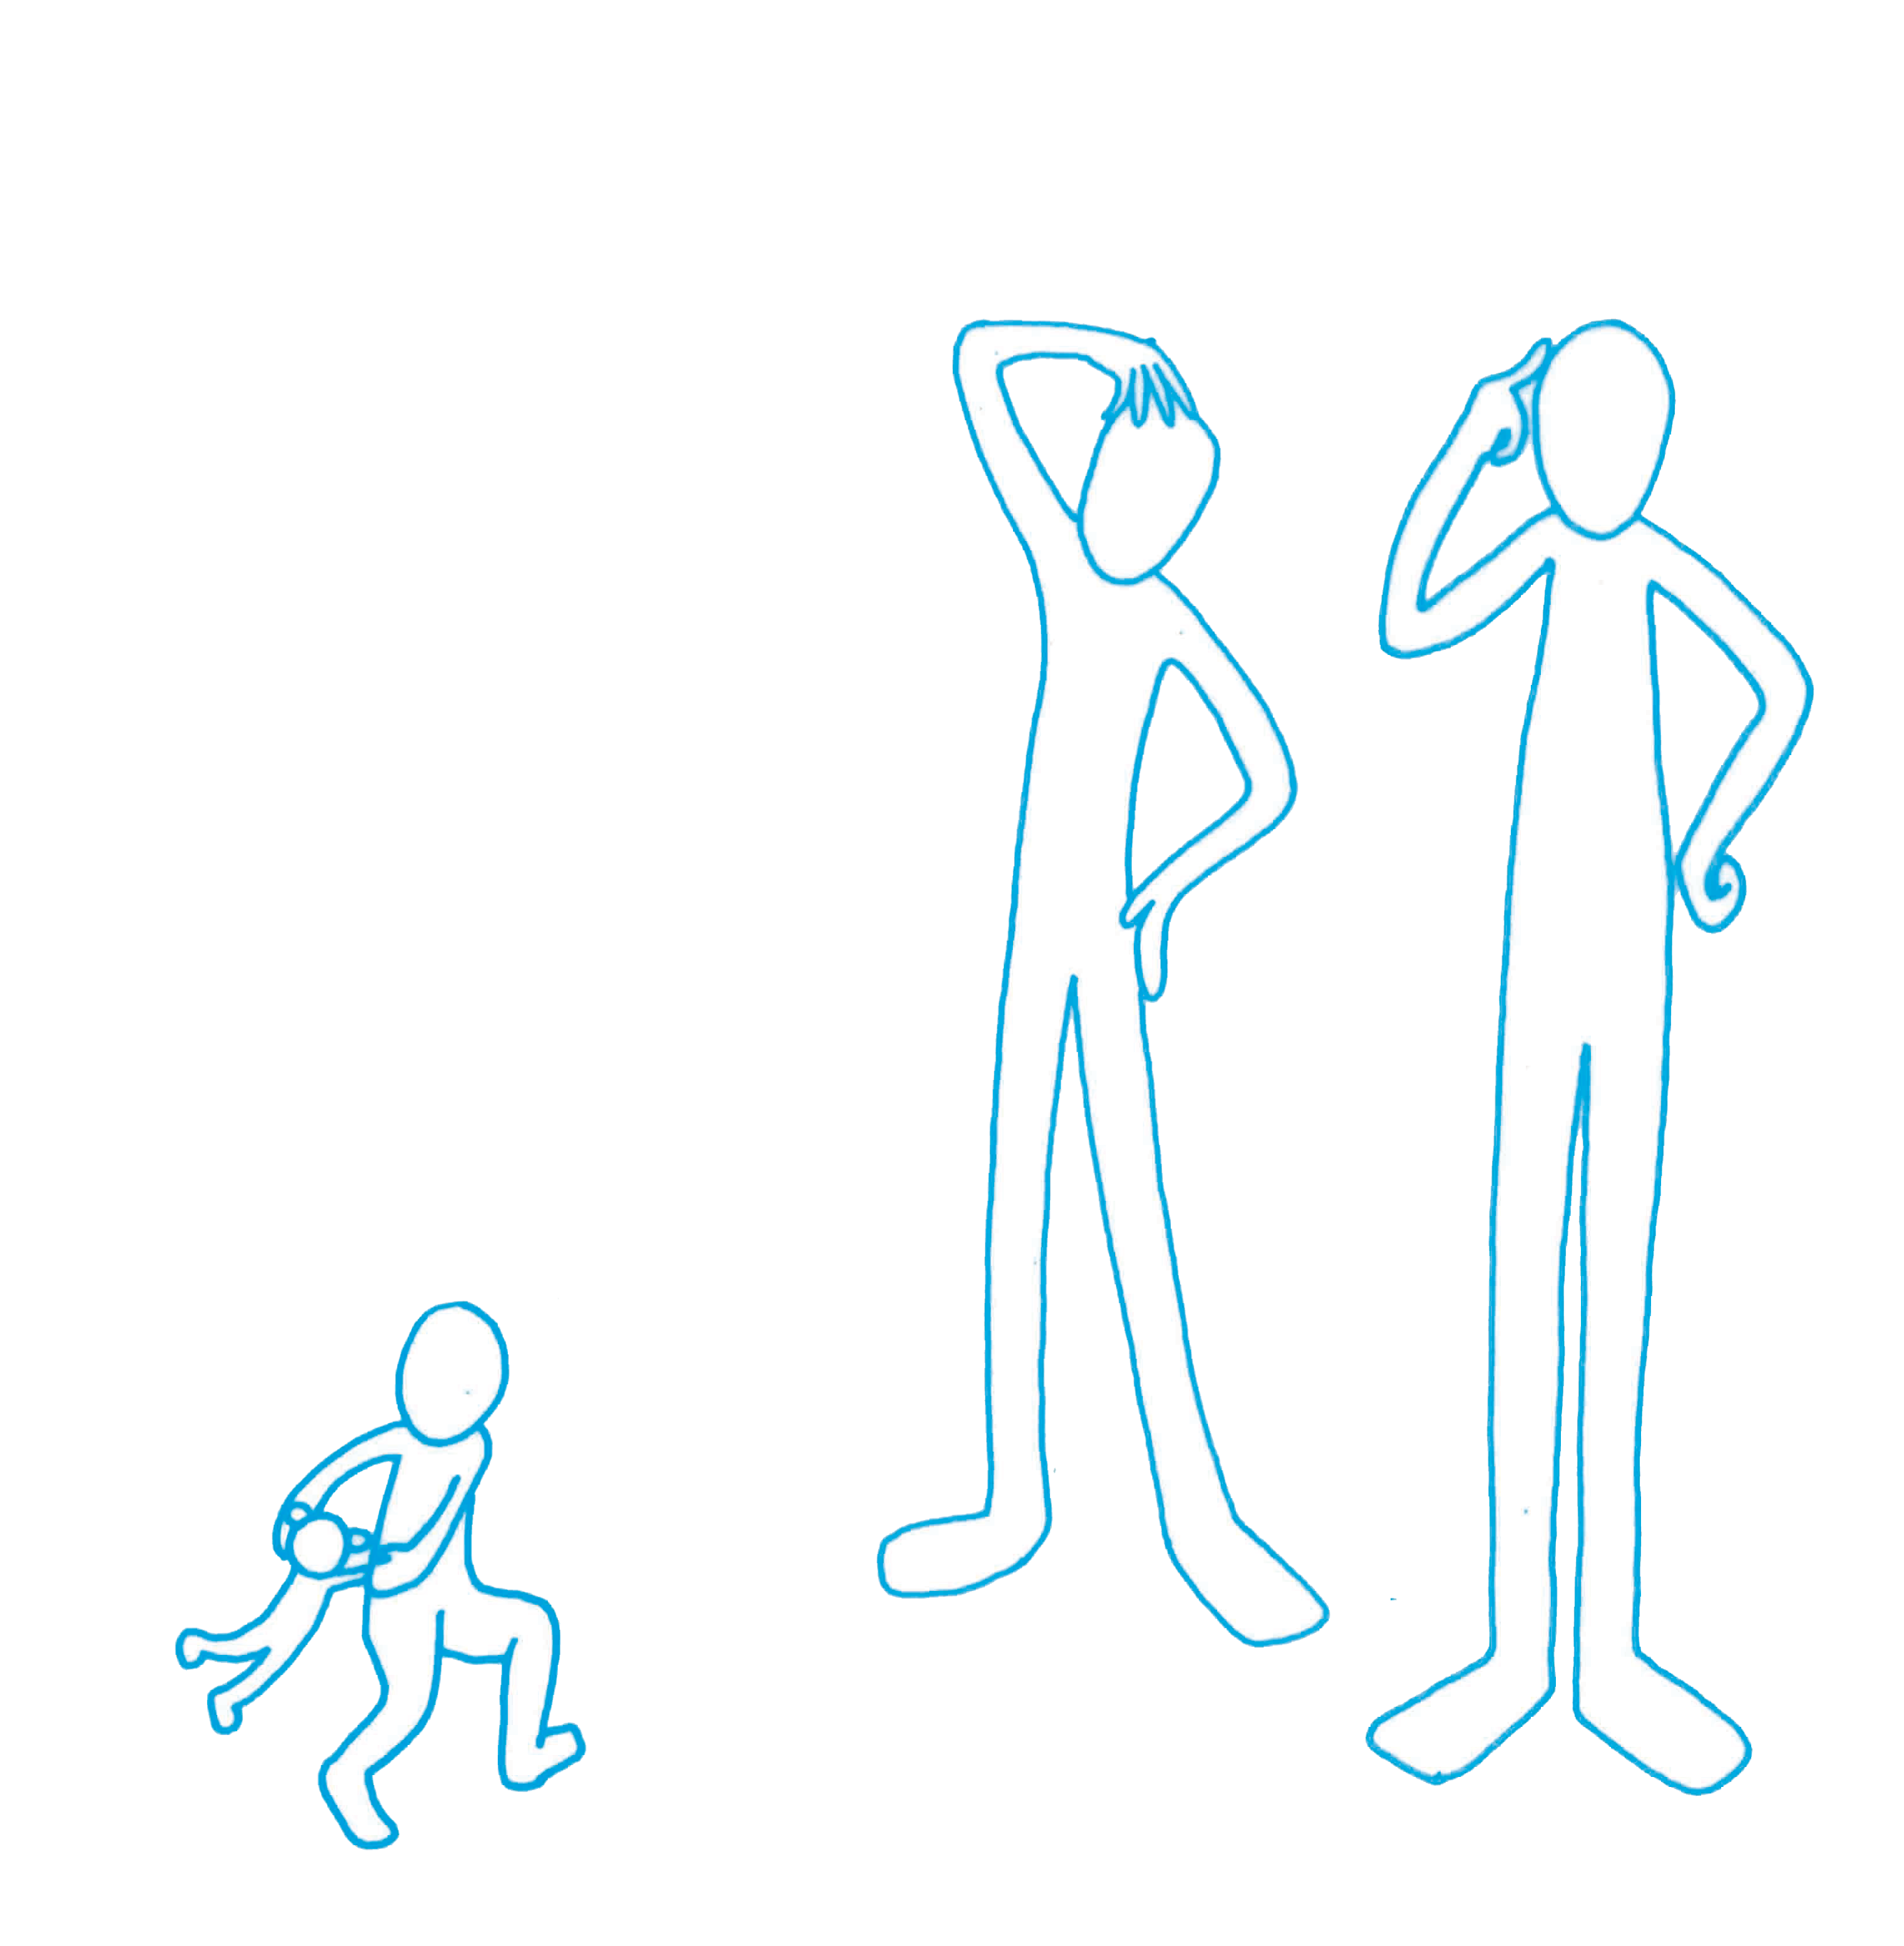 Internationale Familienmediation section icon